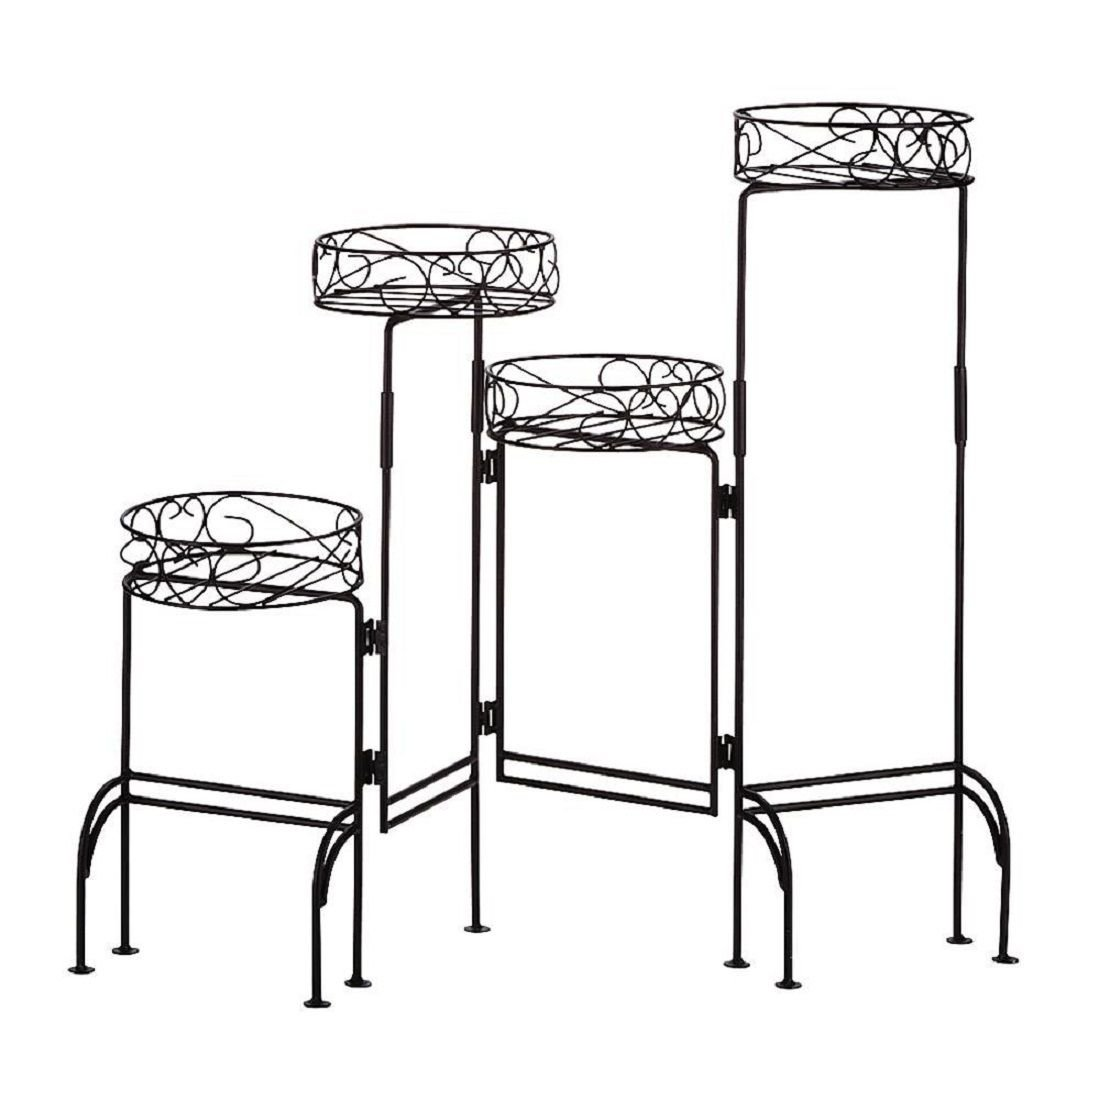 ON SALE FOUR-TIER PLANT STAND SCREEN MESH ADJUSTABLE FOLDING POT HOLDER NEW .#GH45843 3468-T34562FD383536